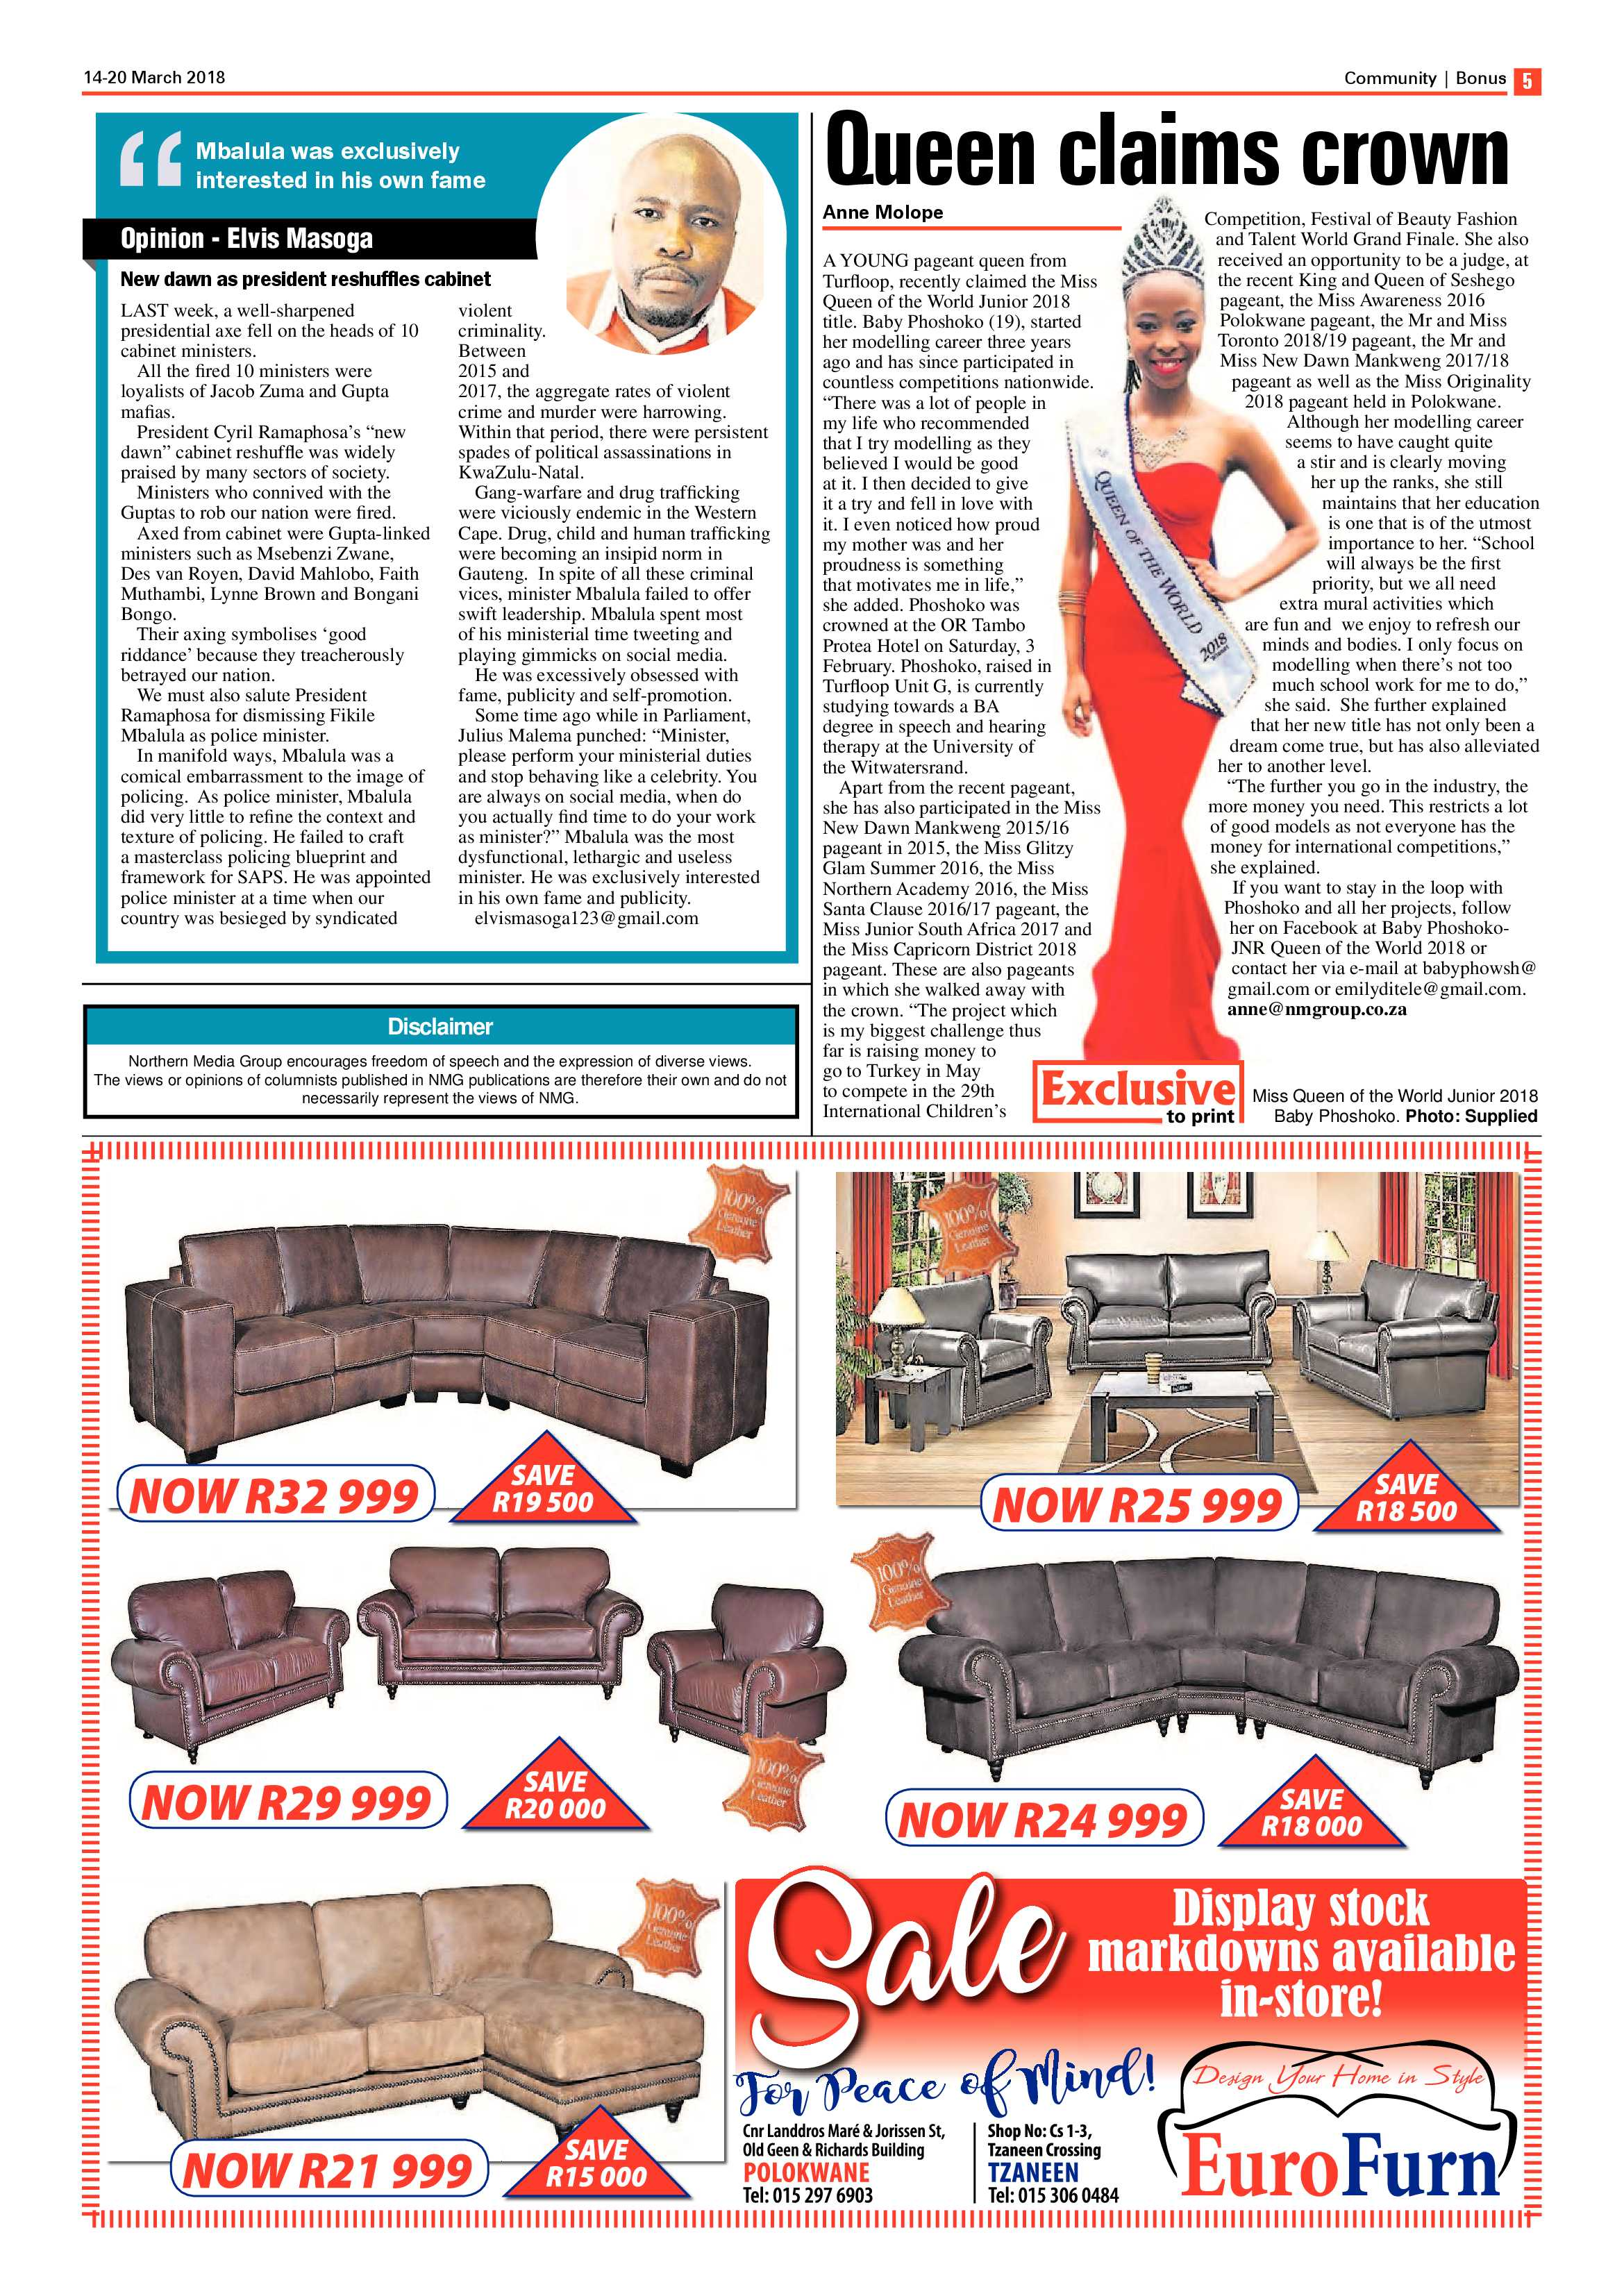 review-bonus-14-march-2018-epapers-page-5